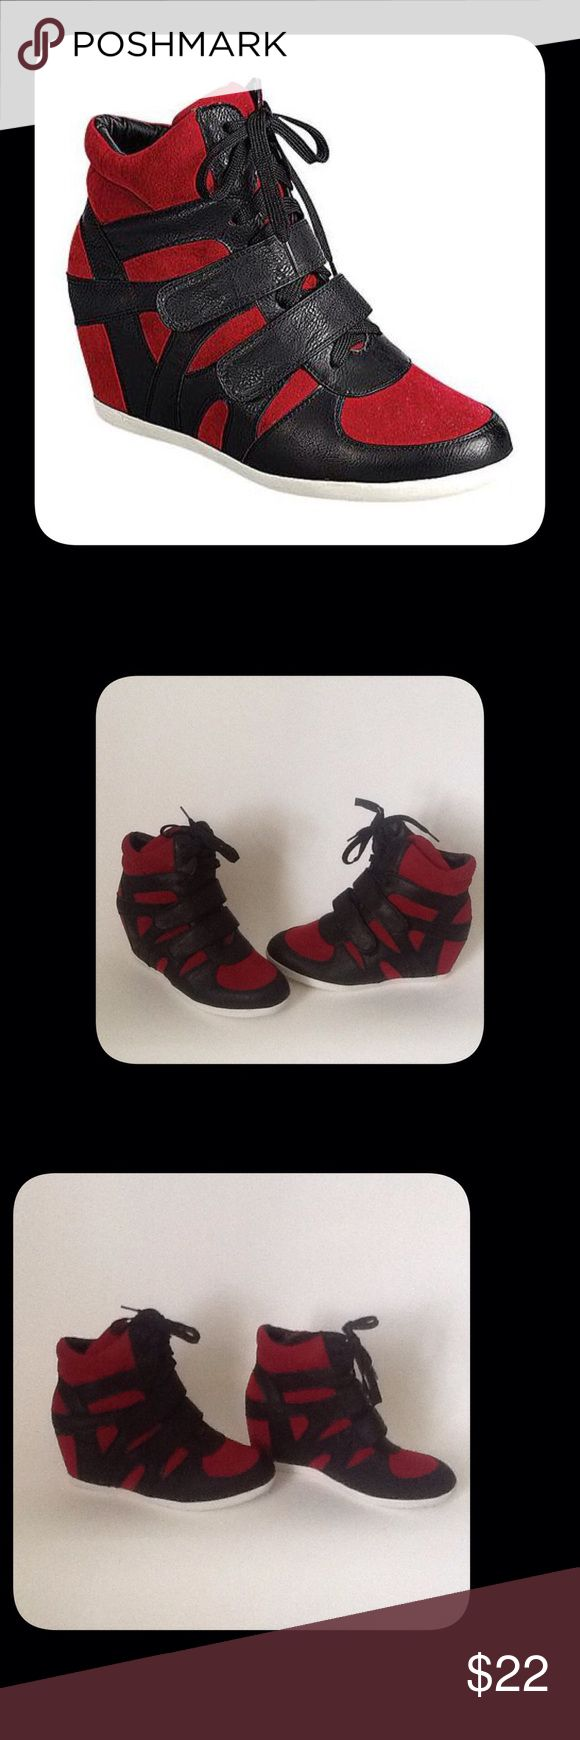 Black/Red Wedge Sneakers These are New and have Never been Worn. To keep Shipping low I will Ship Without the Box!!! Reasonable Offers Only!!! Reneeze Shoes Sneakers